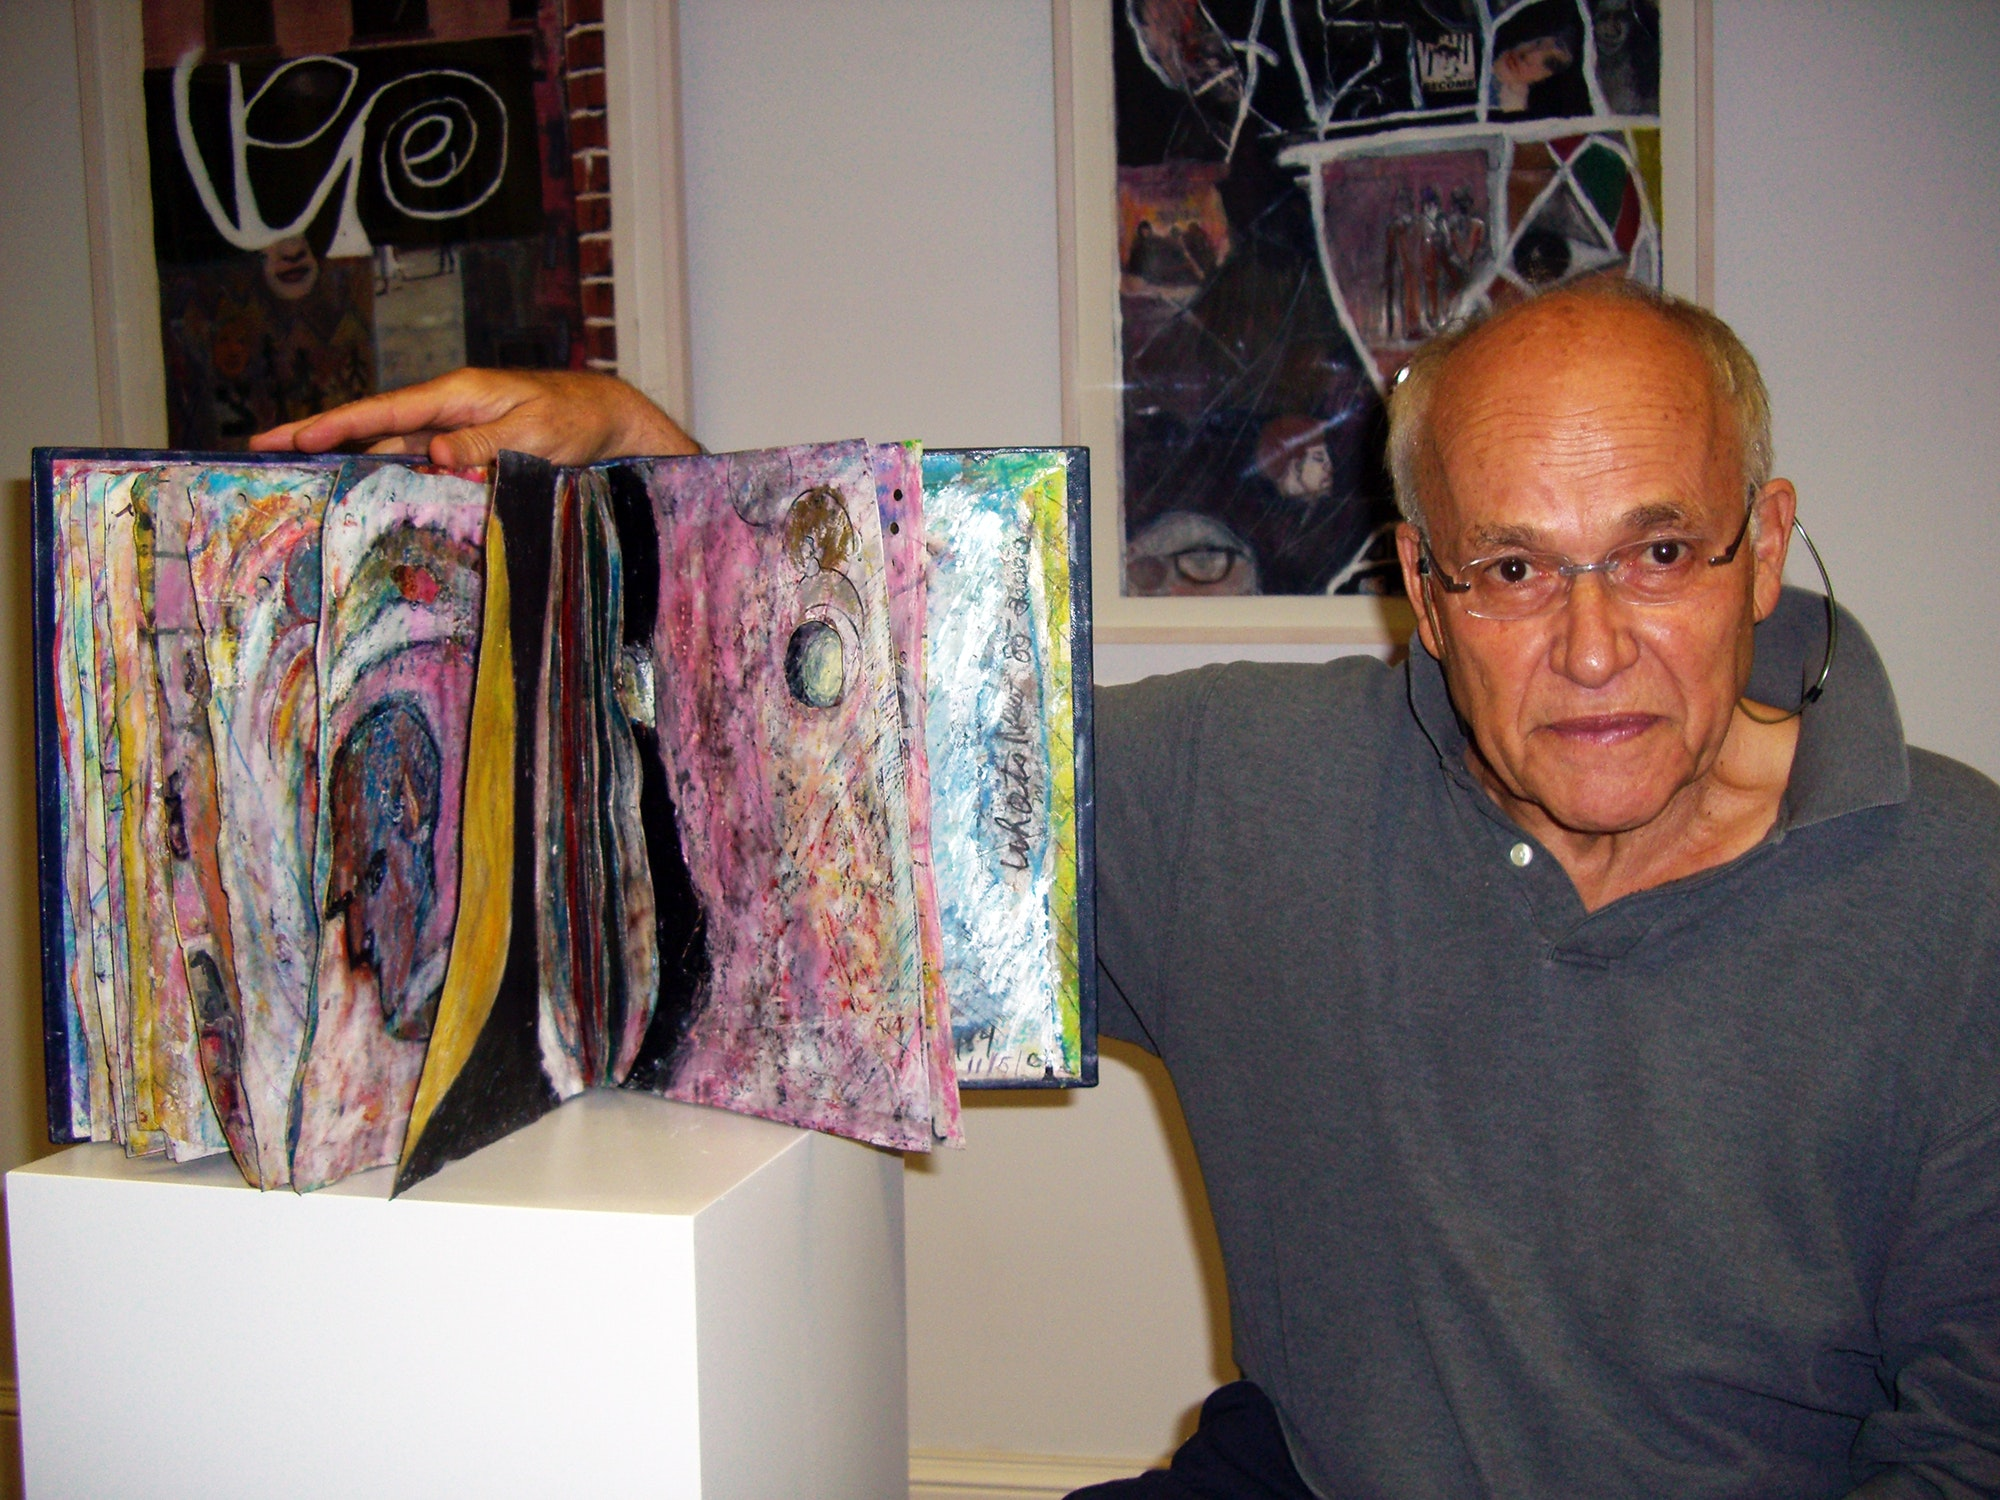 Marty at his exhibition at Windsor Whip Works Art Center in Windsor, NY, 2007. Photo: Eileen Mislove.